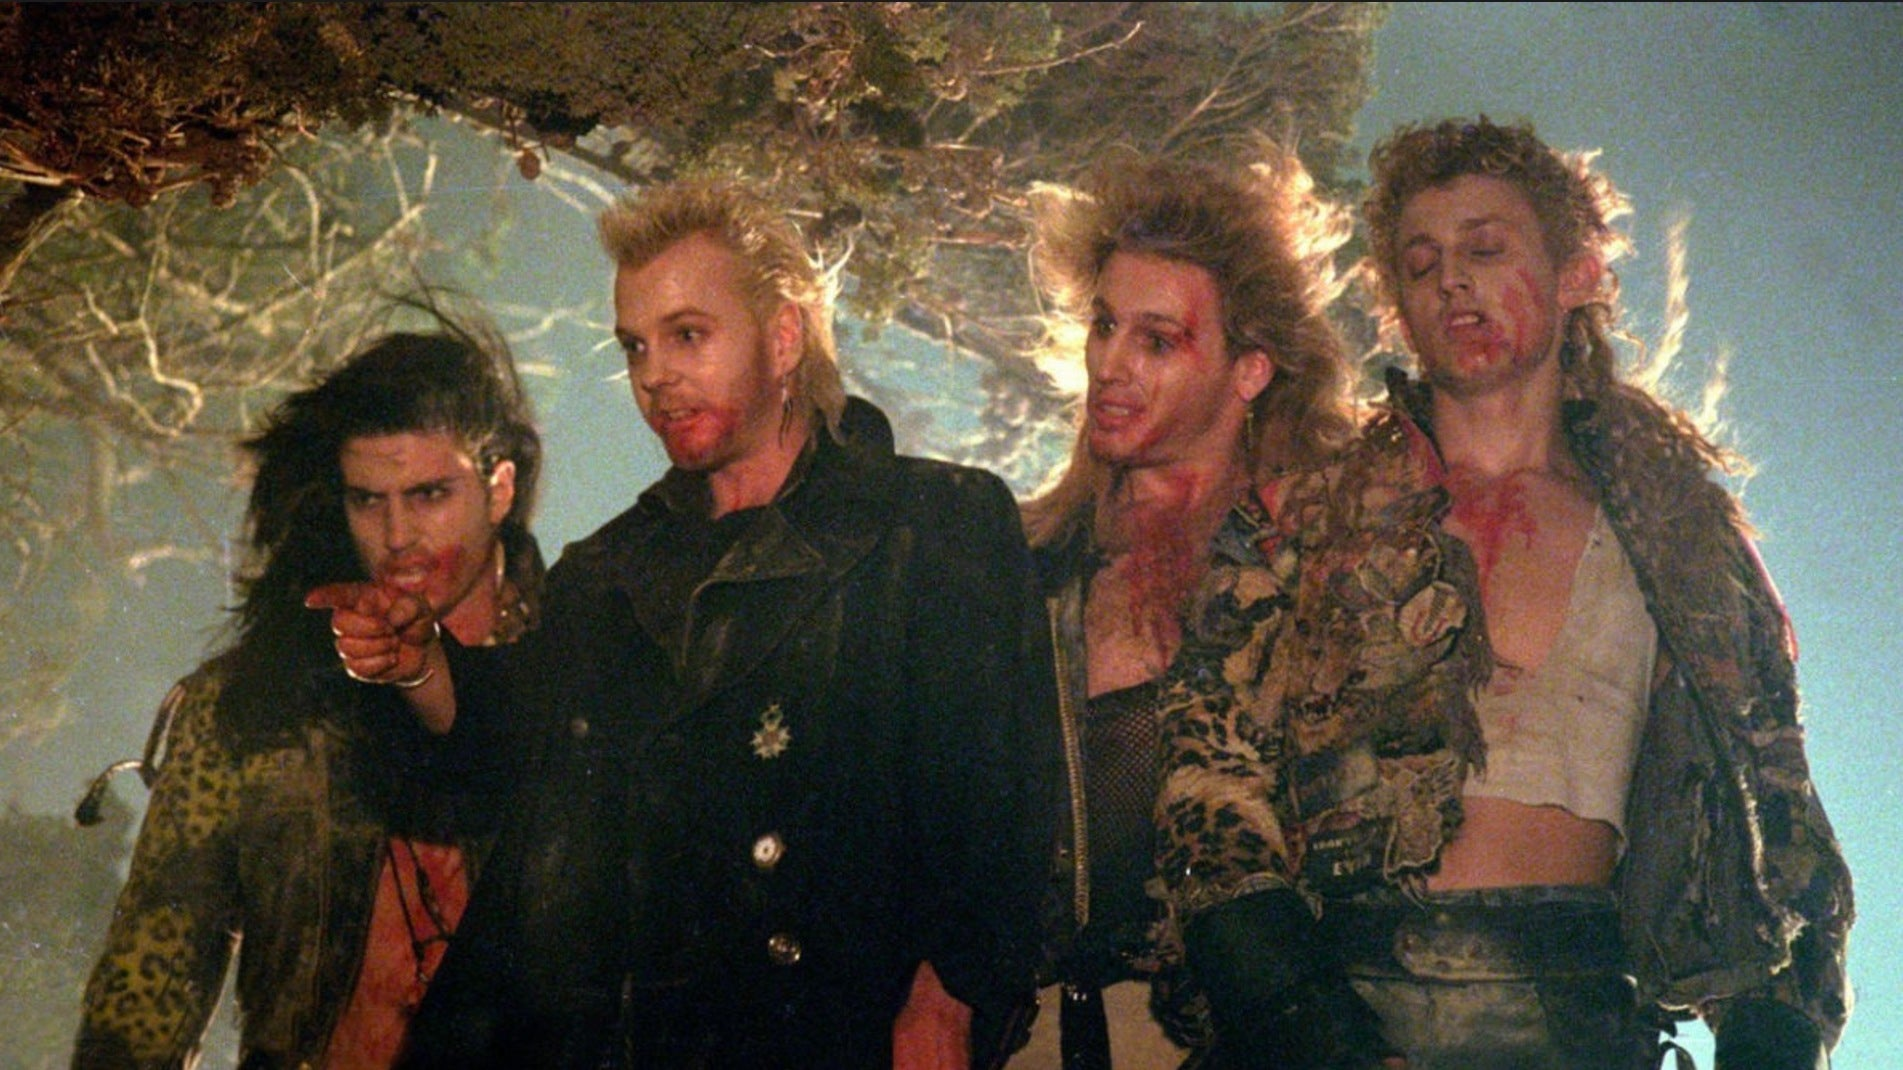 12 Things I Love About The Lost Boys That Have Nothing To Do With Vampires